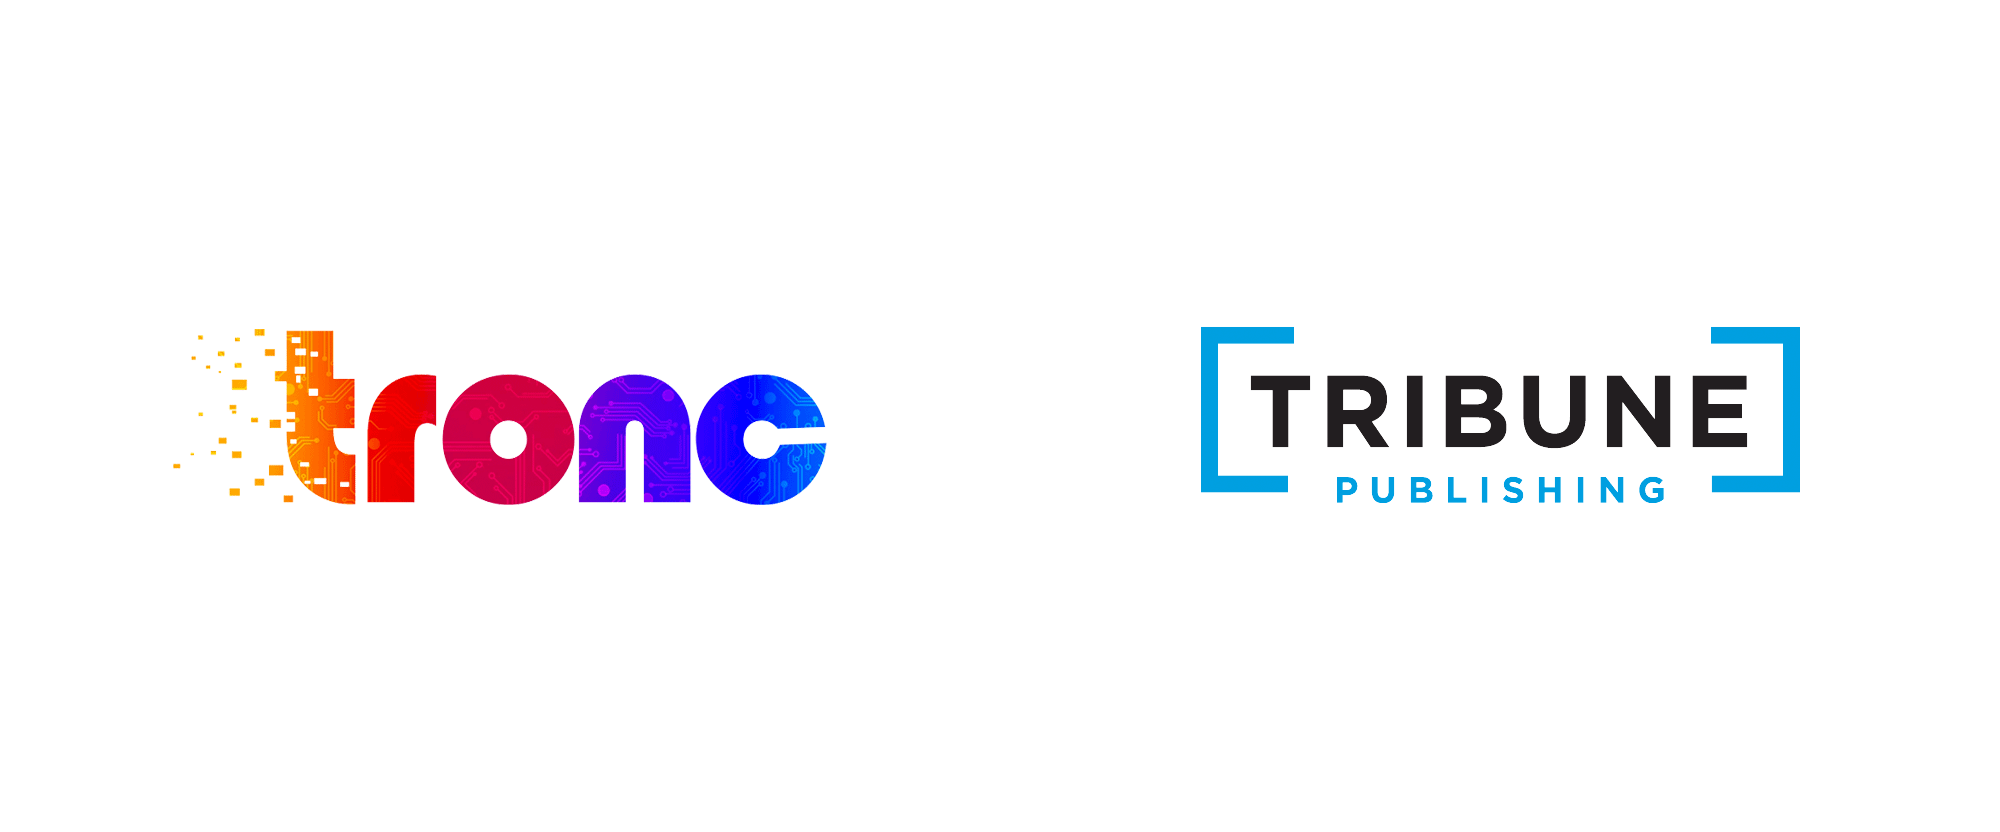 New (Old) Name and Logo for Tribune Publishing